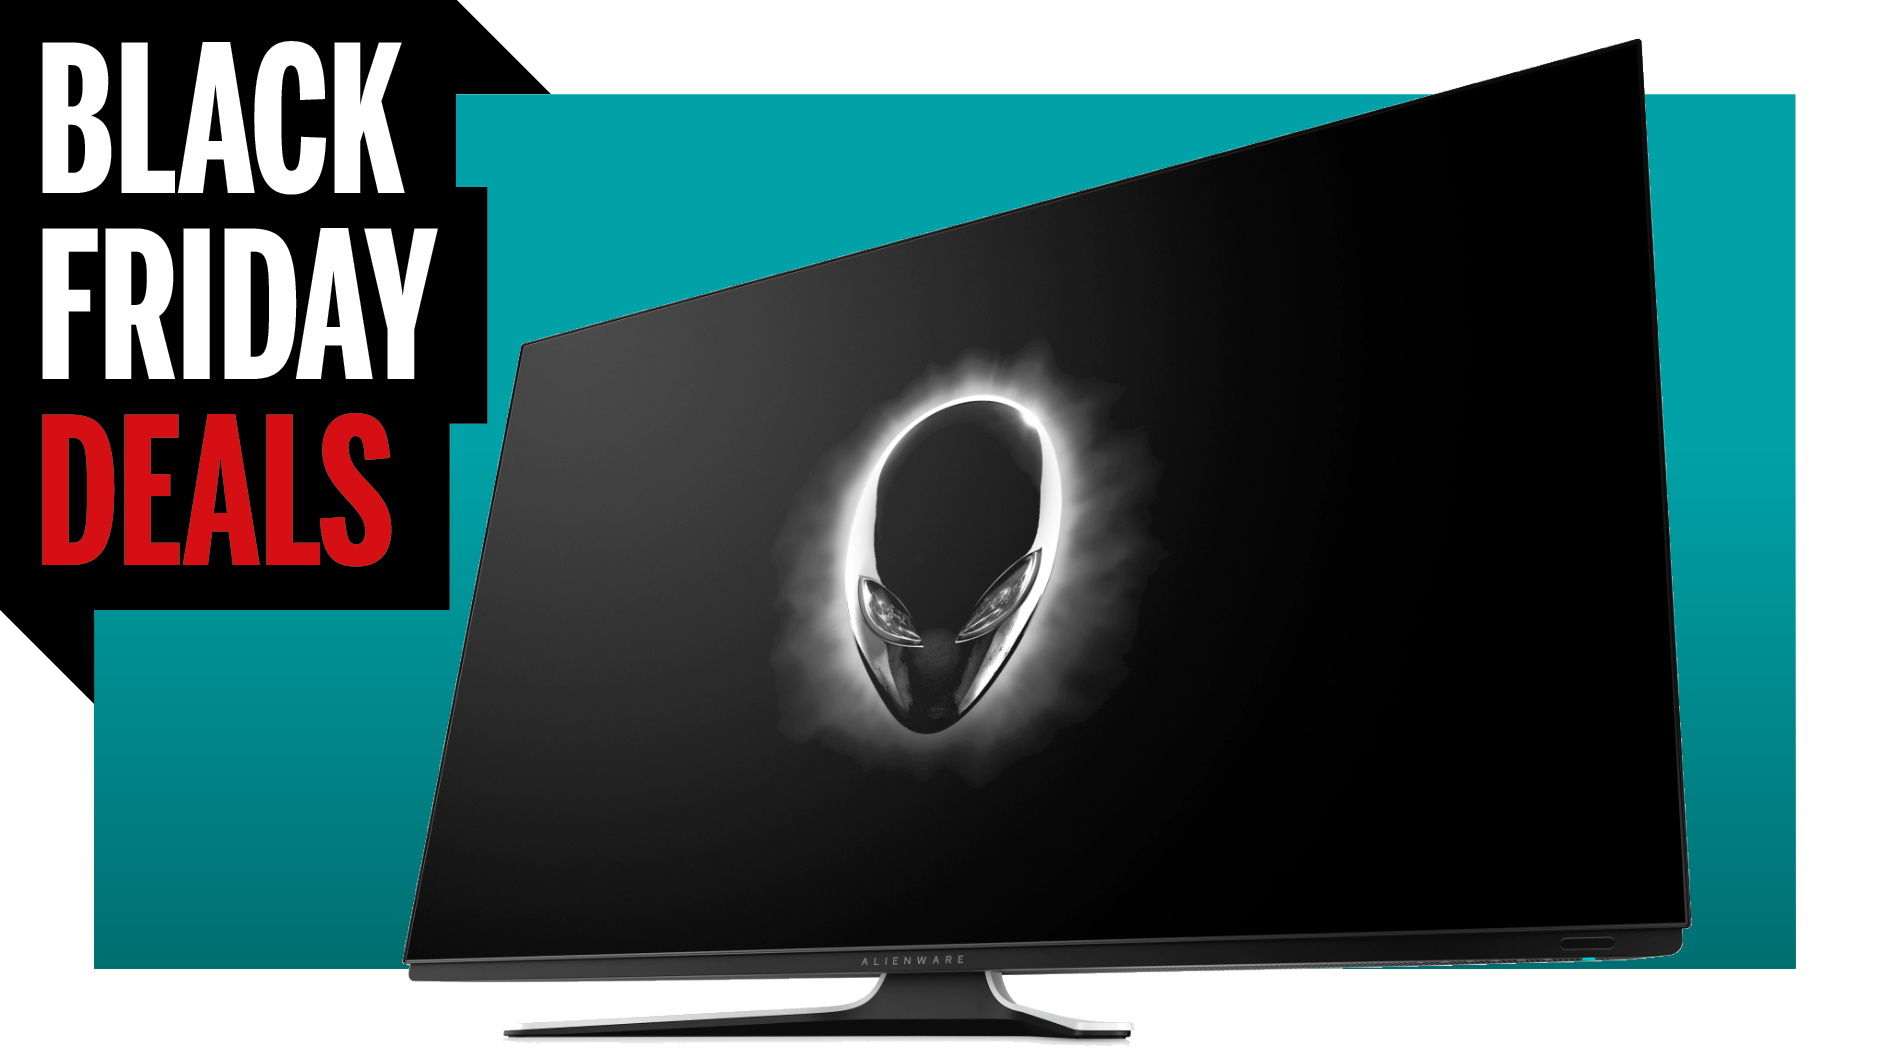 Make every game awesome with this gargantuan 55-inch Alienware OLED monitor